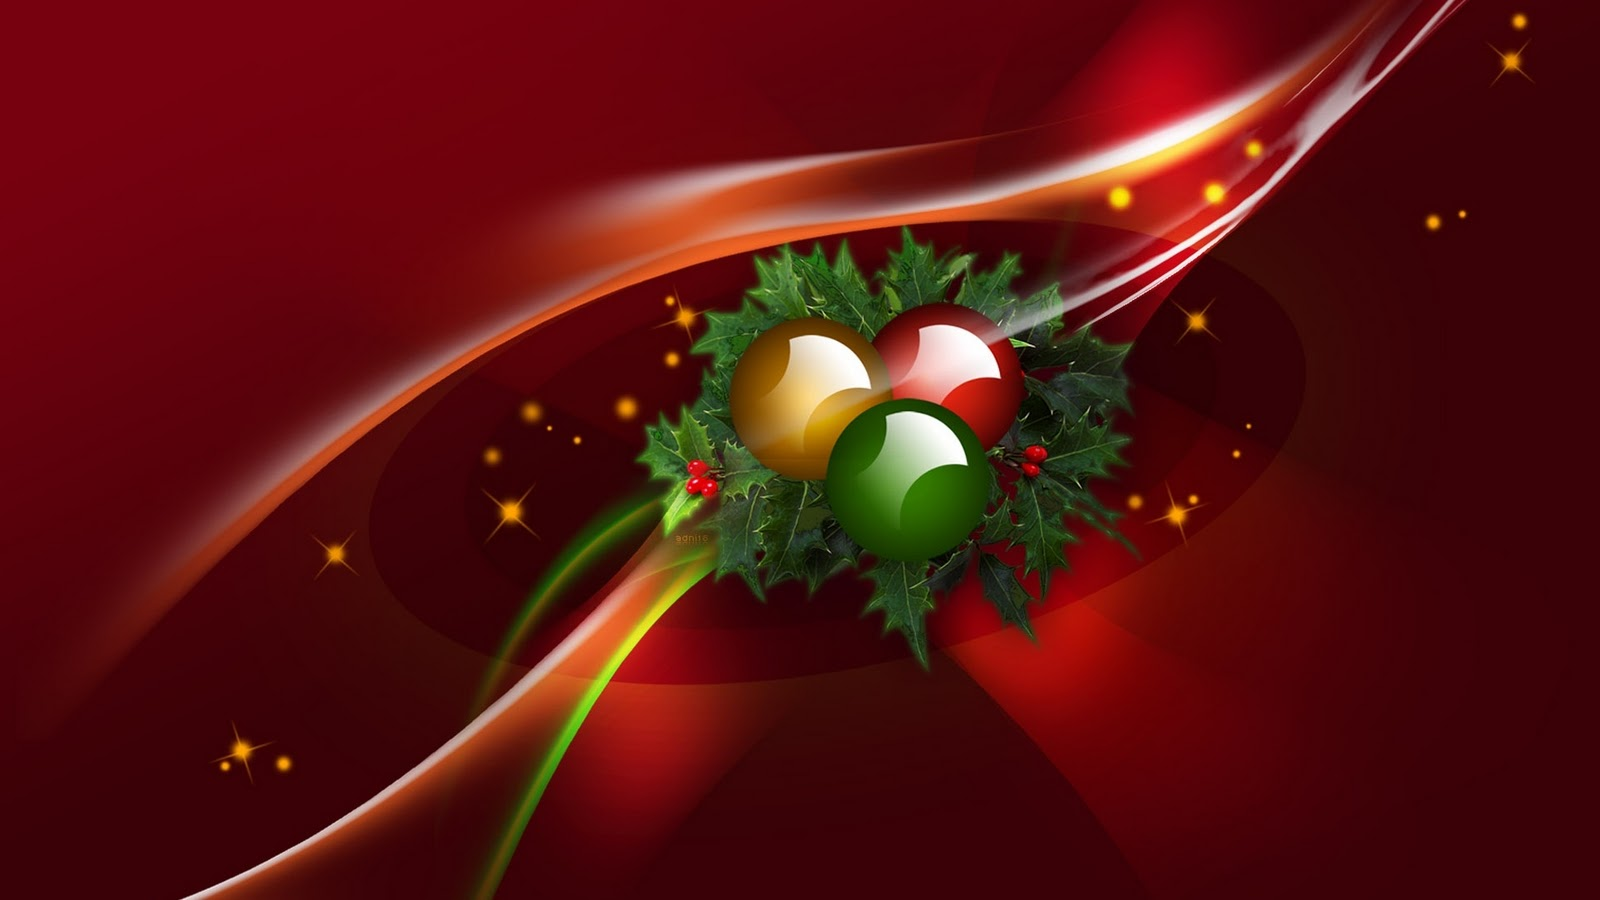 Wallpapers Merry Christmas Desktop Wallpapers Merry Christmas 1600x900